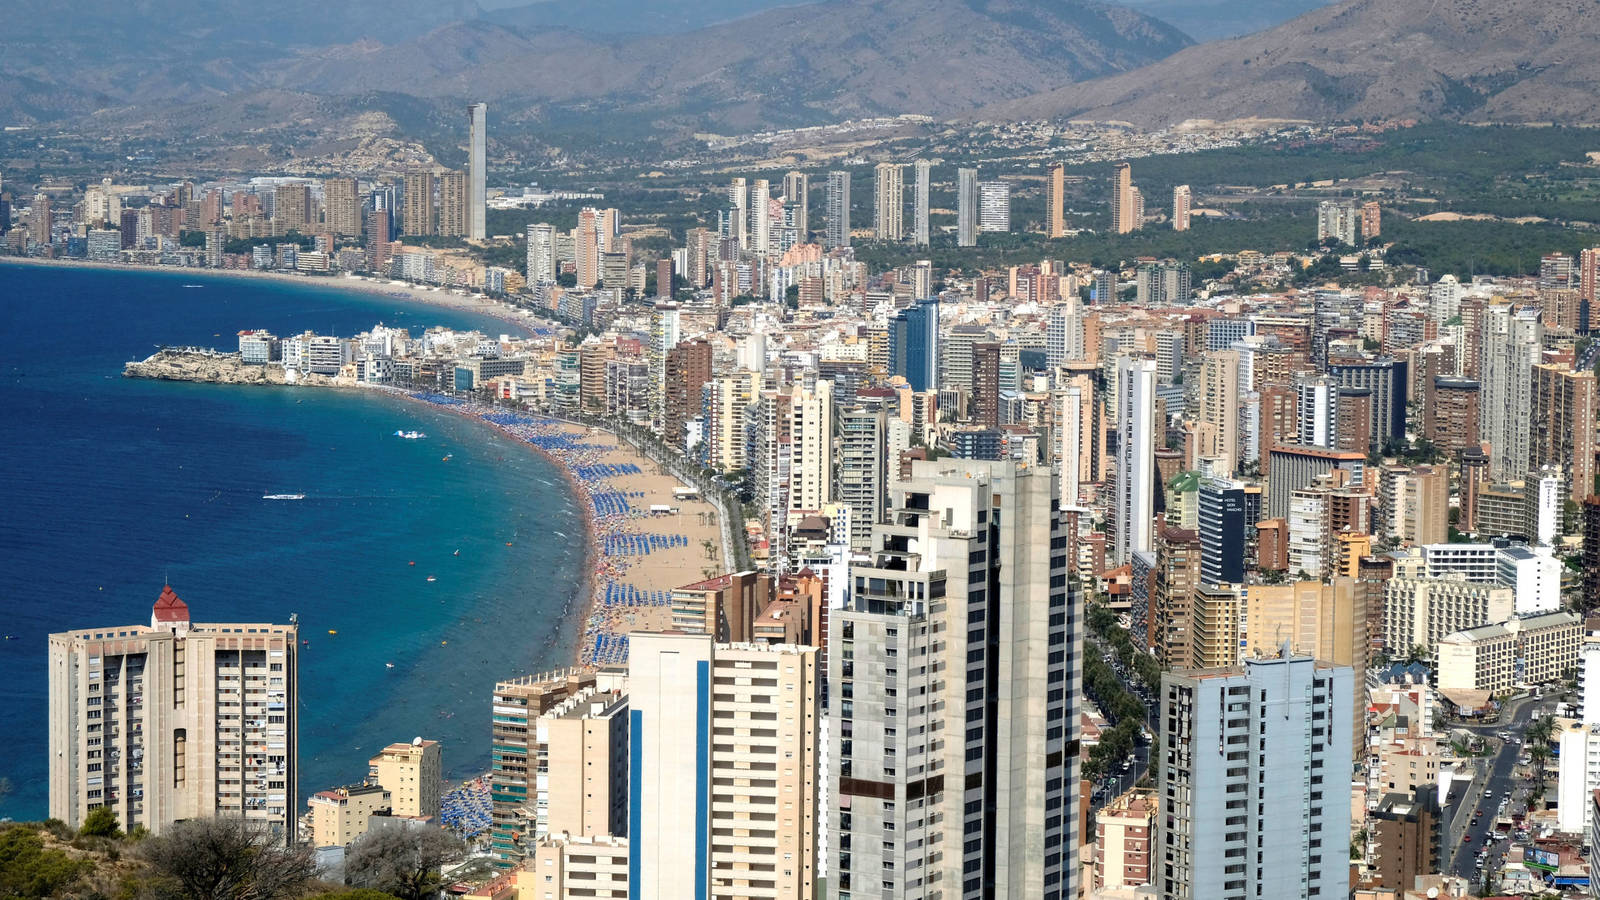 Spain holidays: Benidorm could welcome back Britons in months with 'bubble island' status